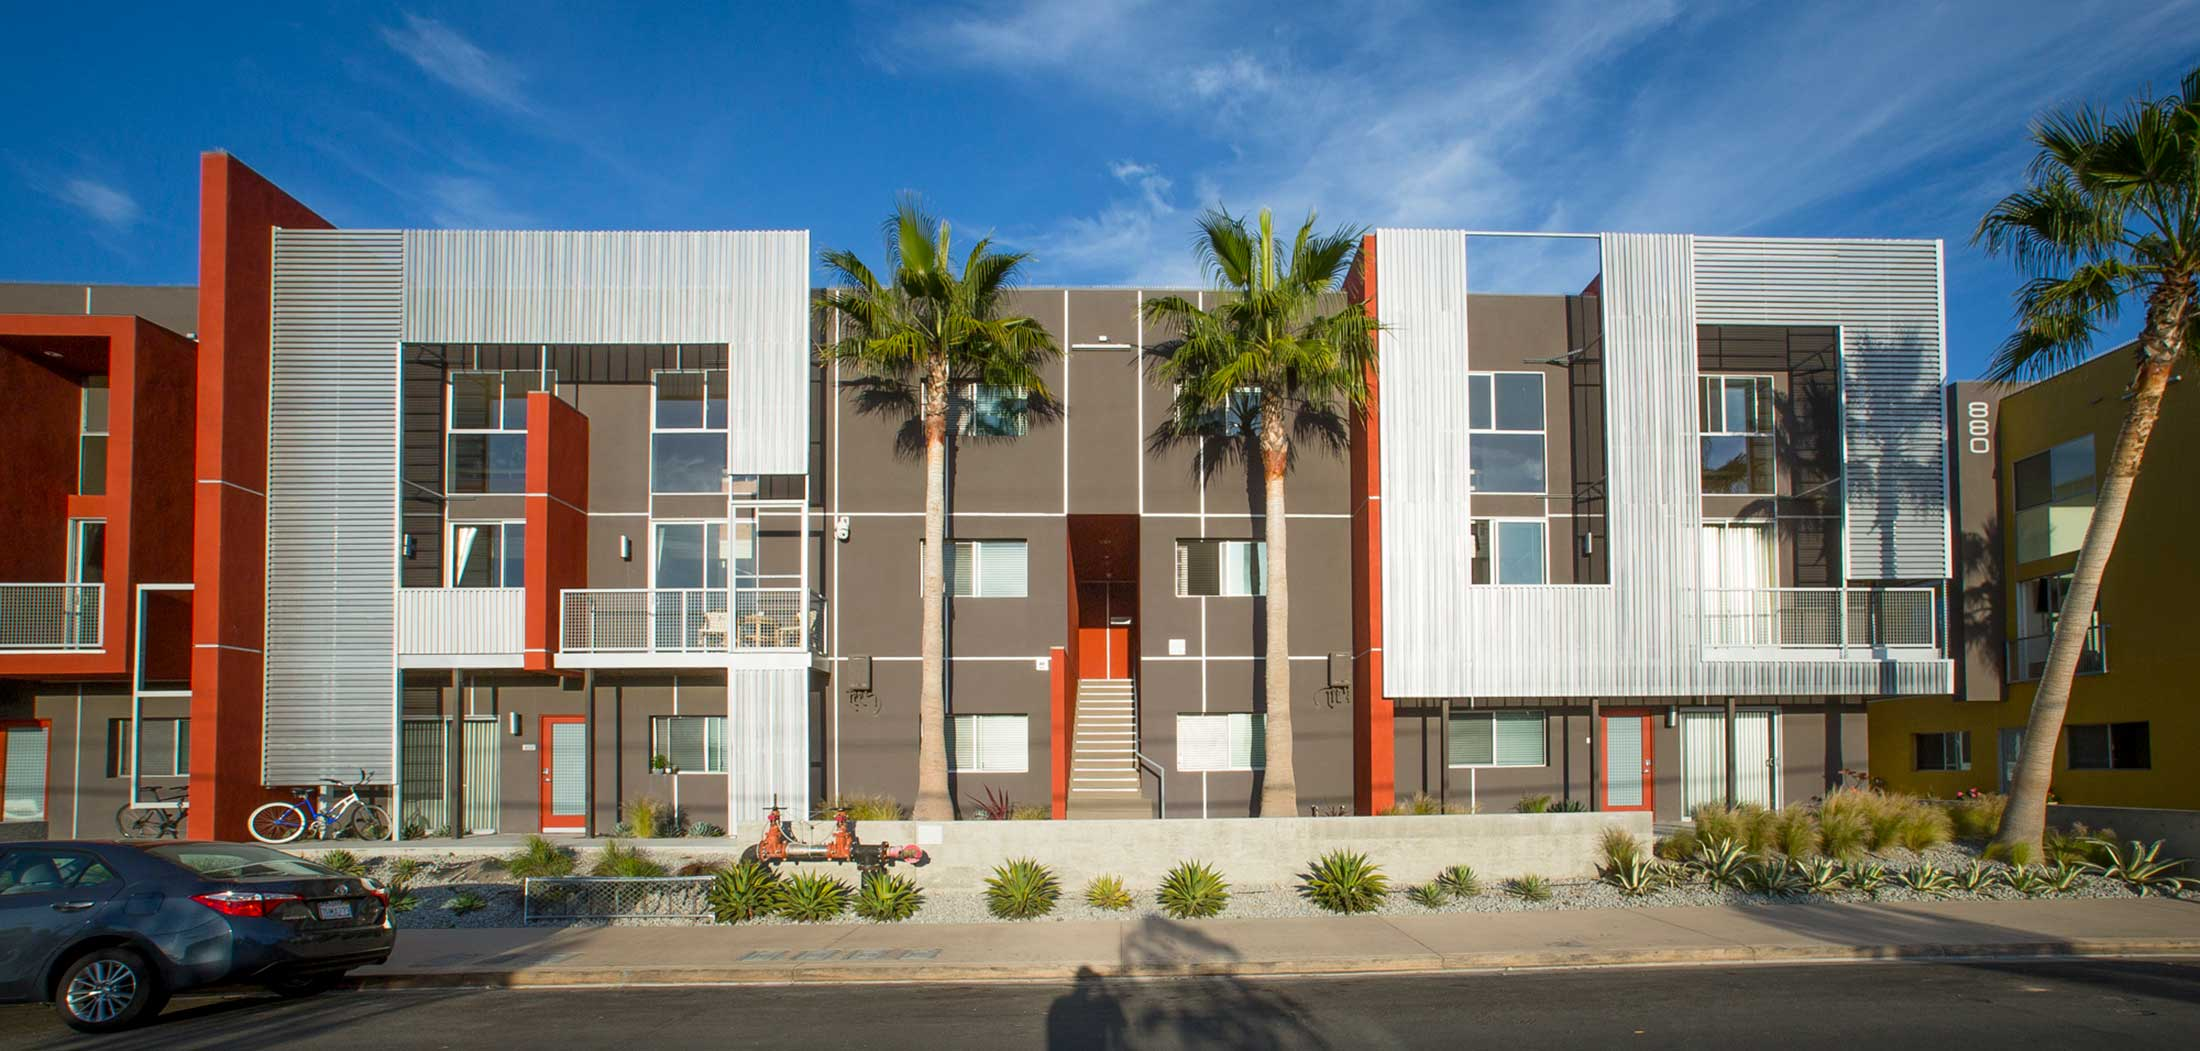 modern-architecture-building-multi-family-sustainable-california-shubindonaldson-ivhousing-12